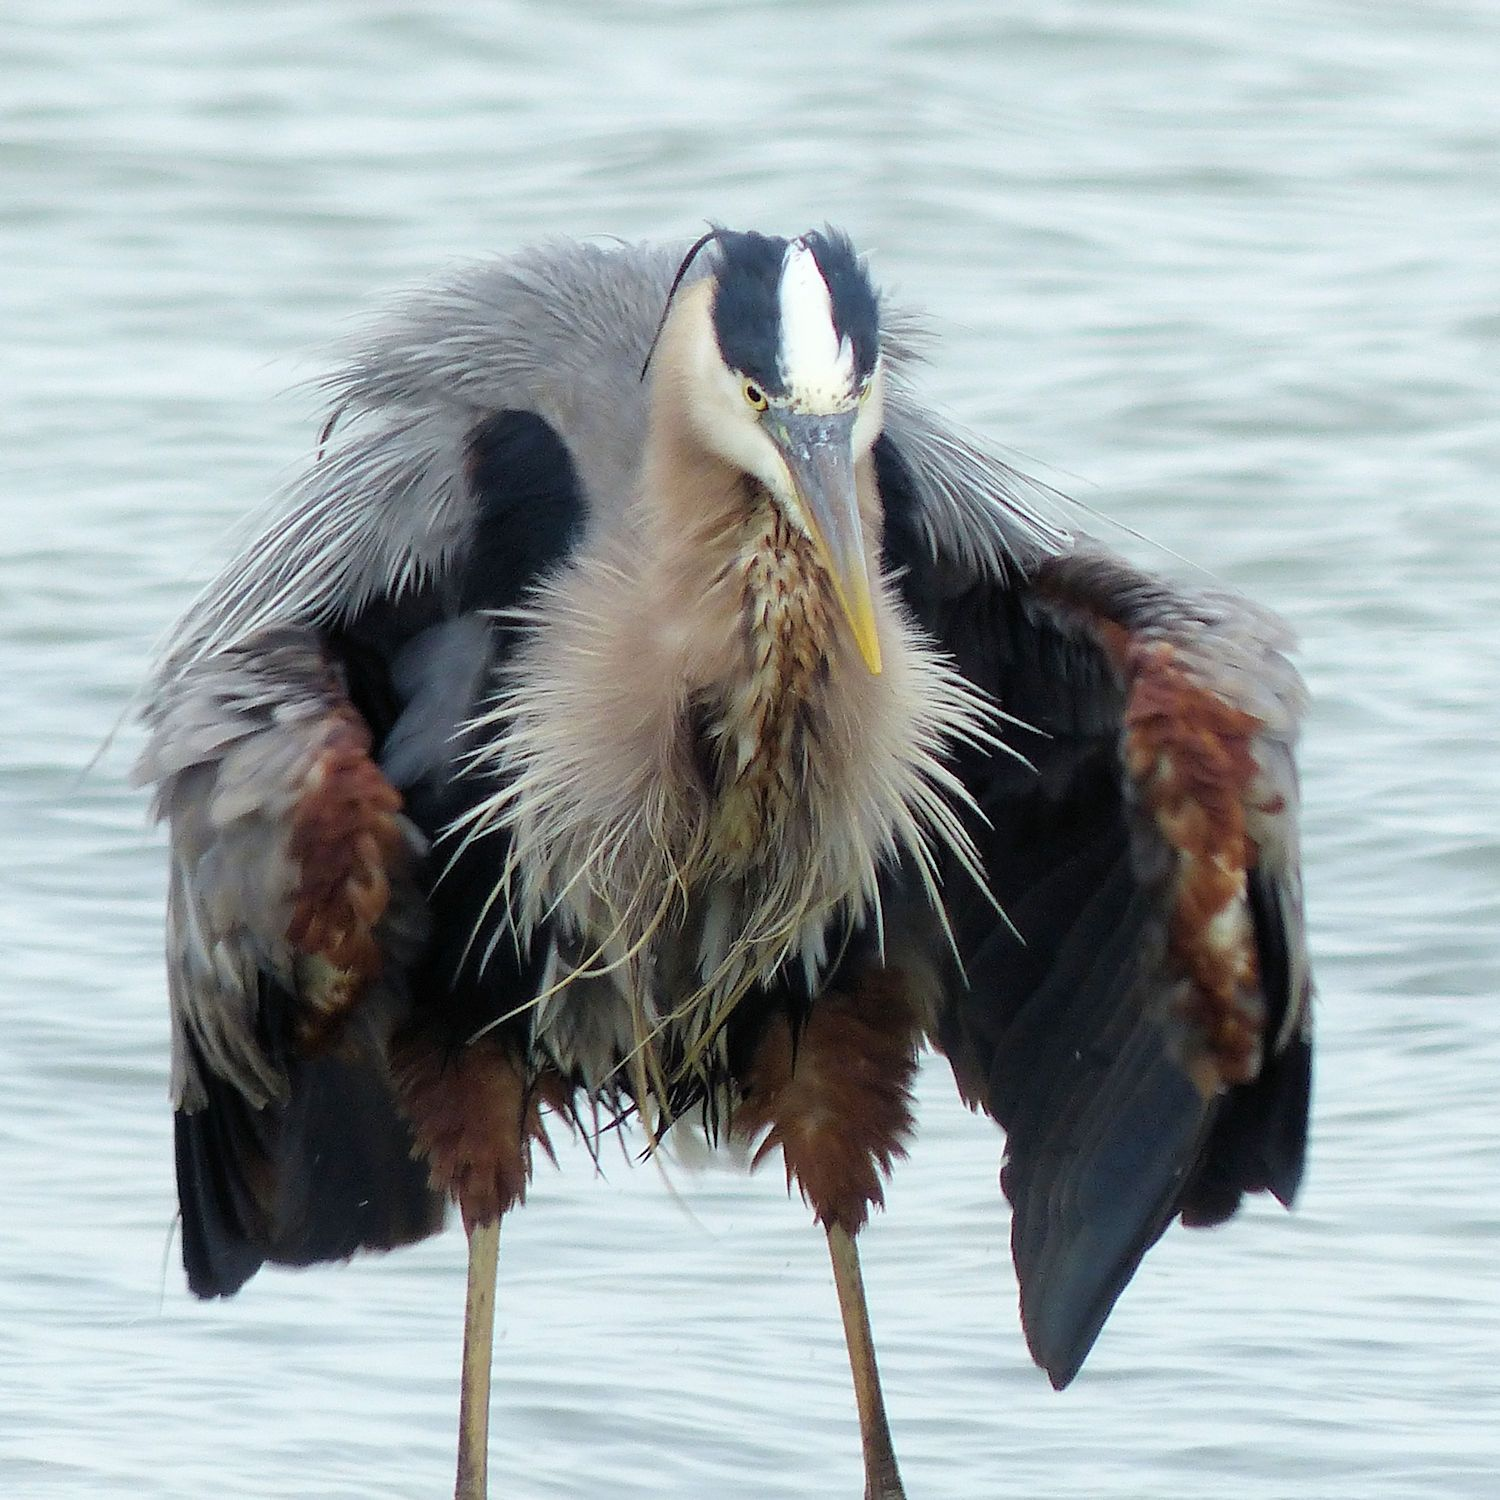 Great Blue Heron ... flasher! (He is really just shaking off the water)